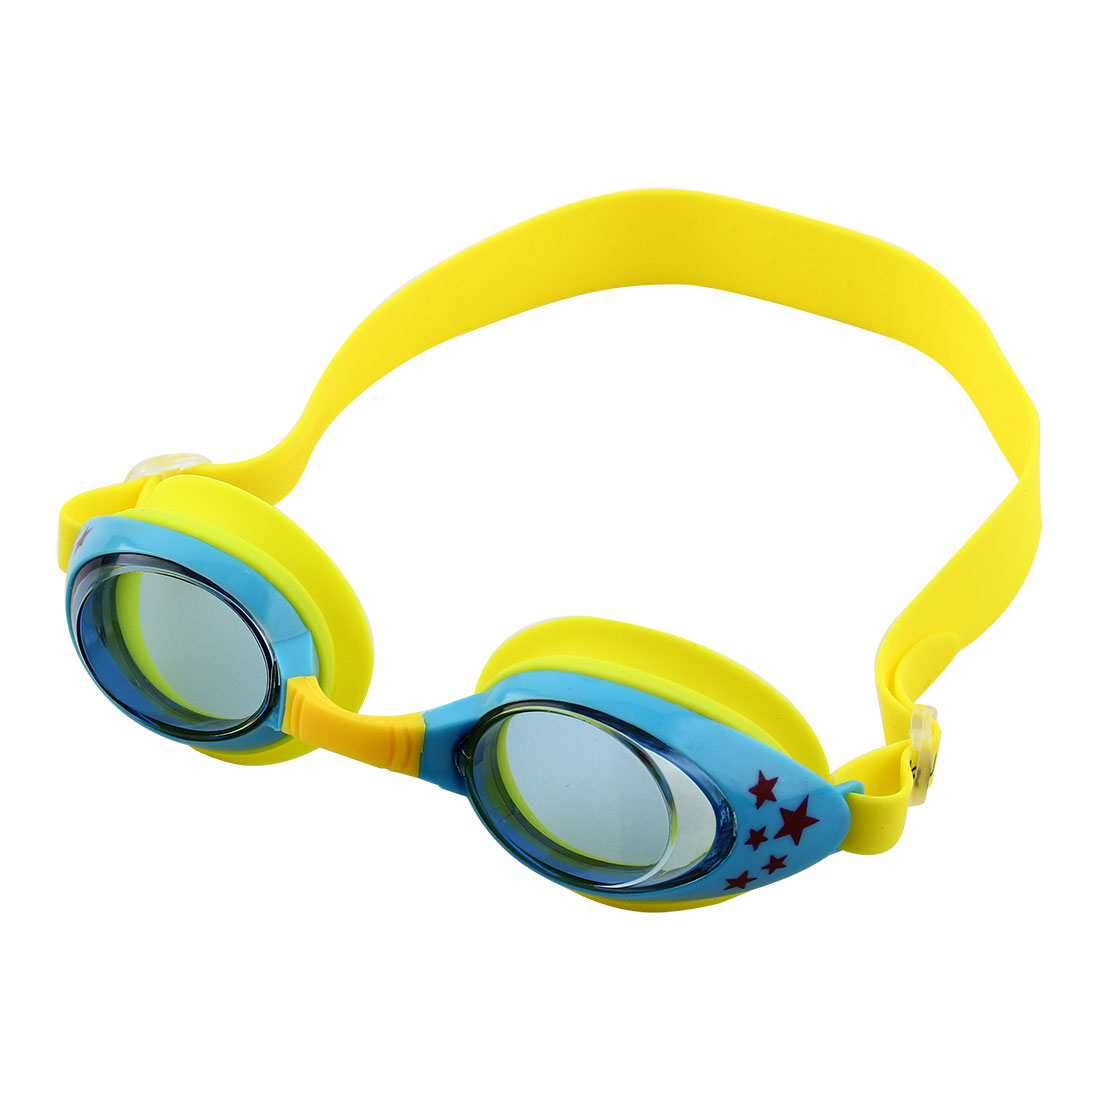 Clear Vision Anti Fog Adjustable Belt Swim Glasses Swimming Goggles Yellow Blue w Storage Case for Youth Boys Girls